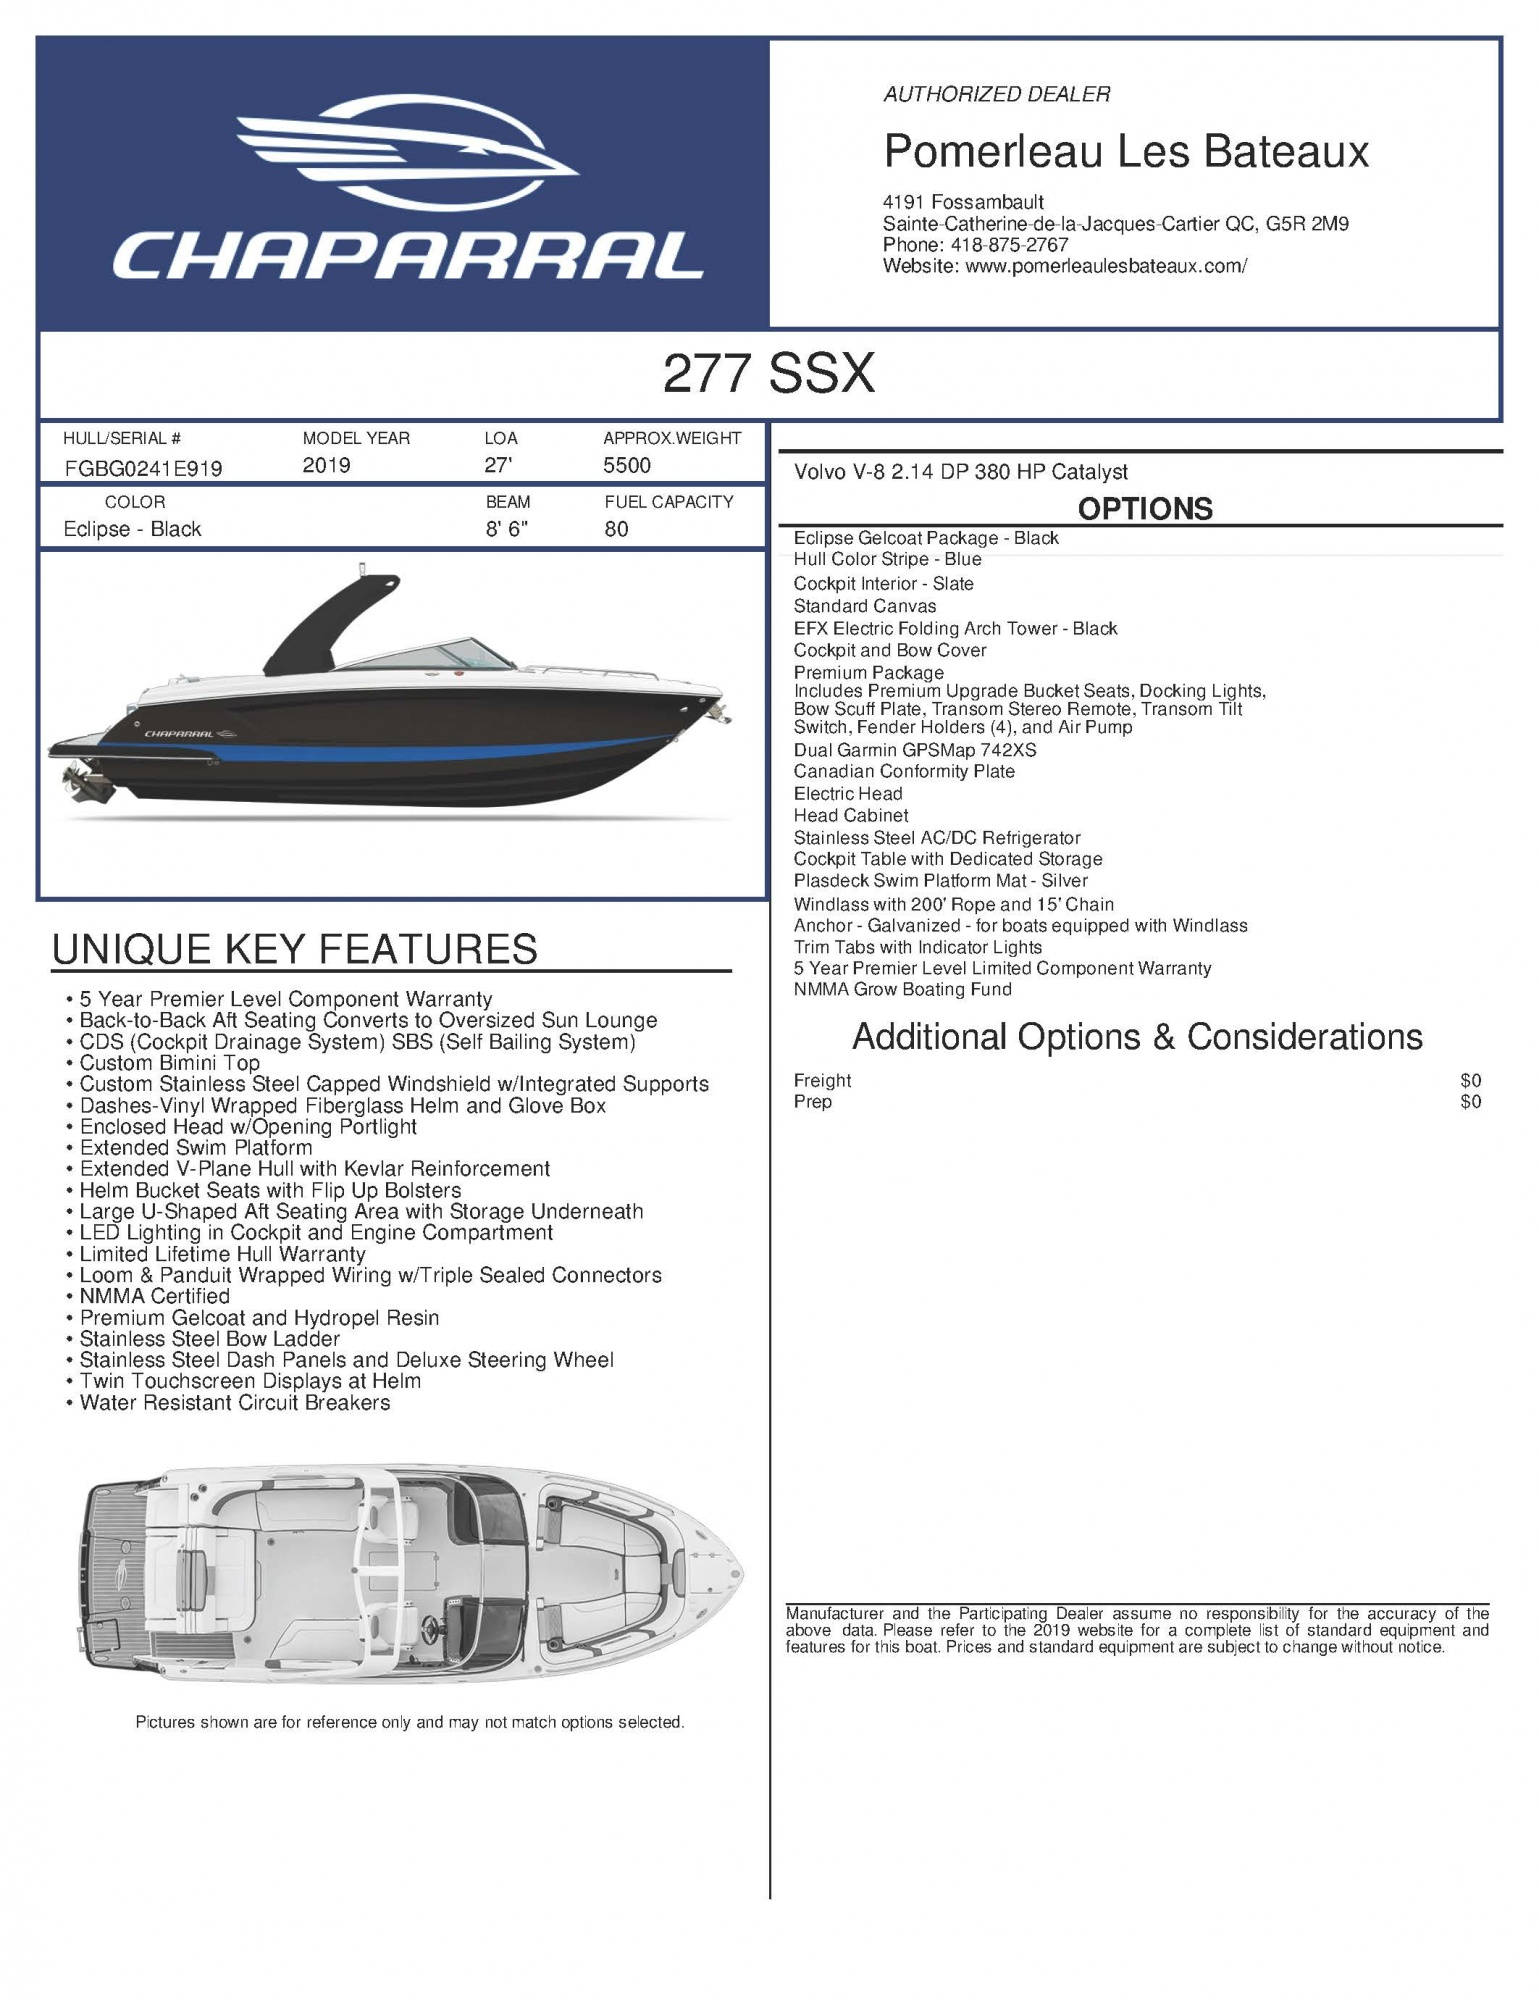 Chaparral SSX 277 - Chaparral-Boats-2019-277--Window-Sticker-268946